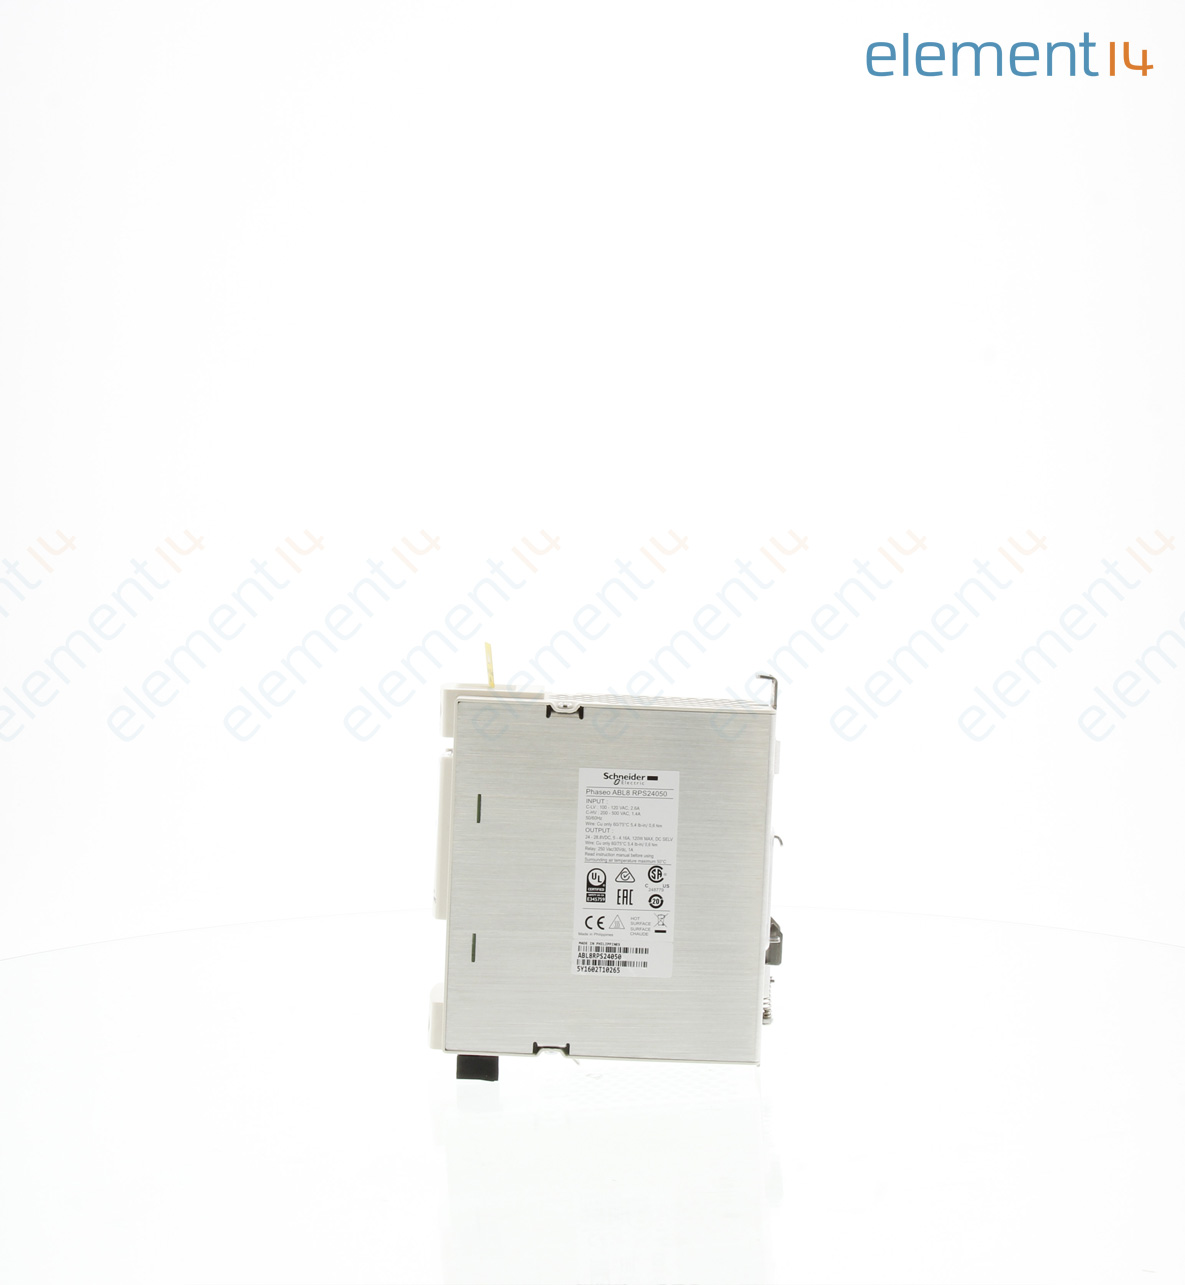 Abl8rps24050 Schneider Electric Ac Dc Din Rail Power Supply Psu Electronics Learning Circuits Webonly Products Technology Add To Compare